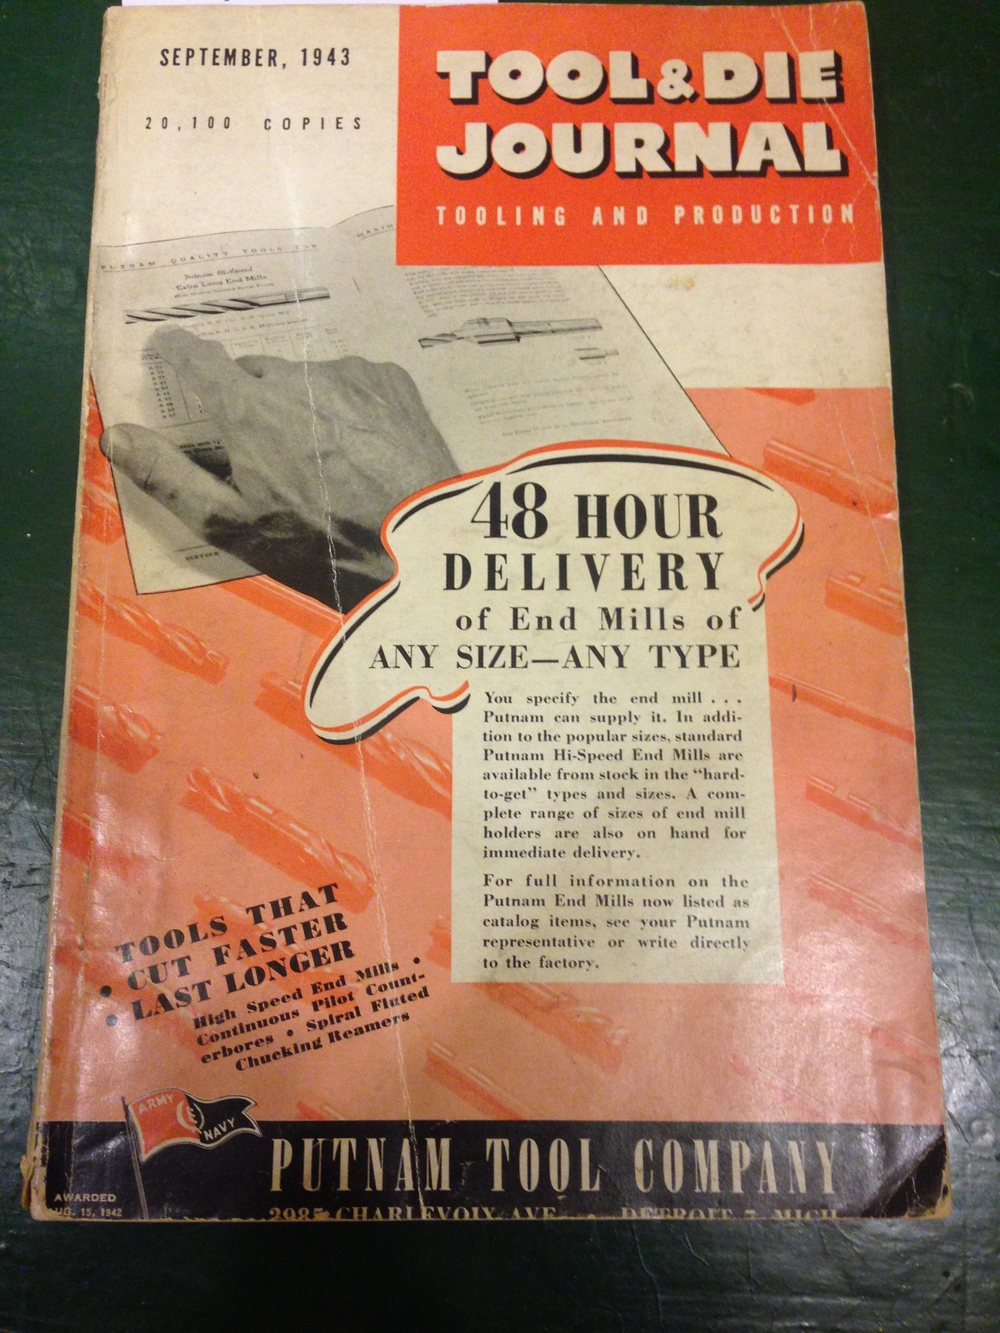 September 1943 issue: I wonder if they still honor the 48 hour delivery guarantee...